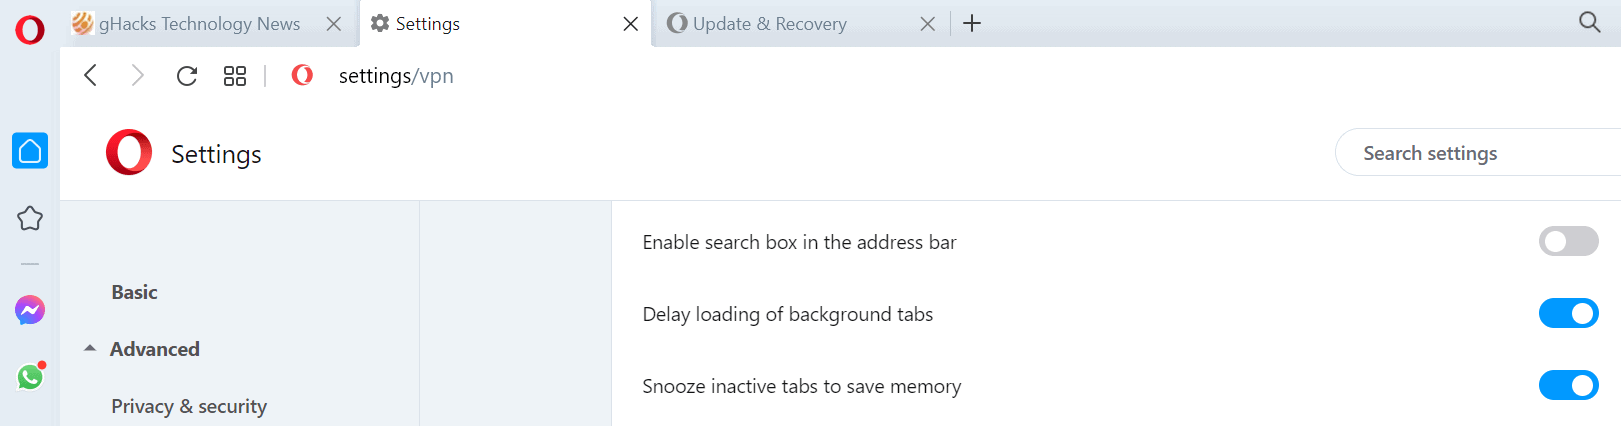 opera snooze inactive tabs